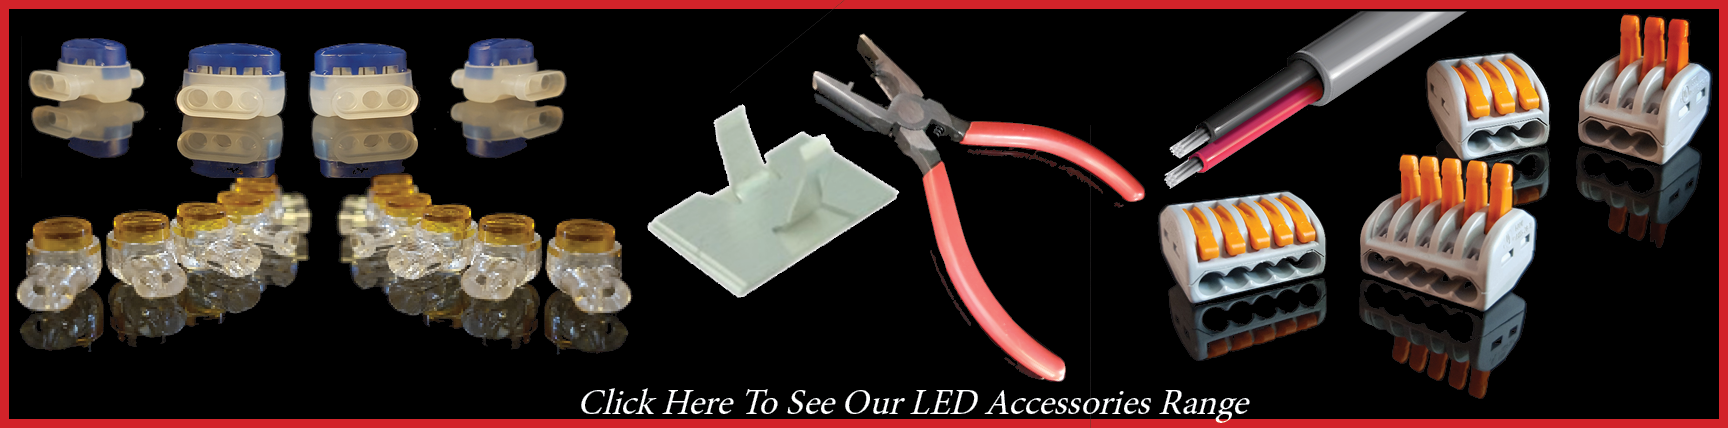 LED Accessories